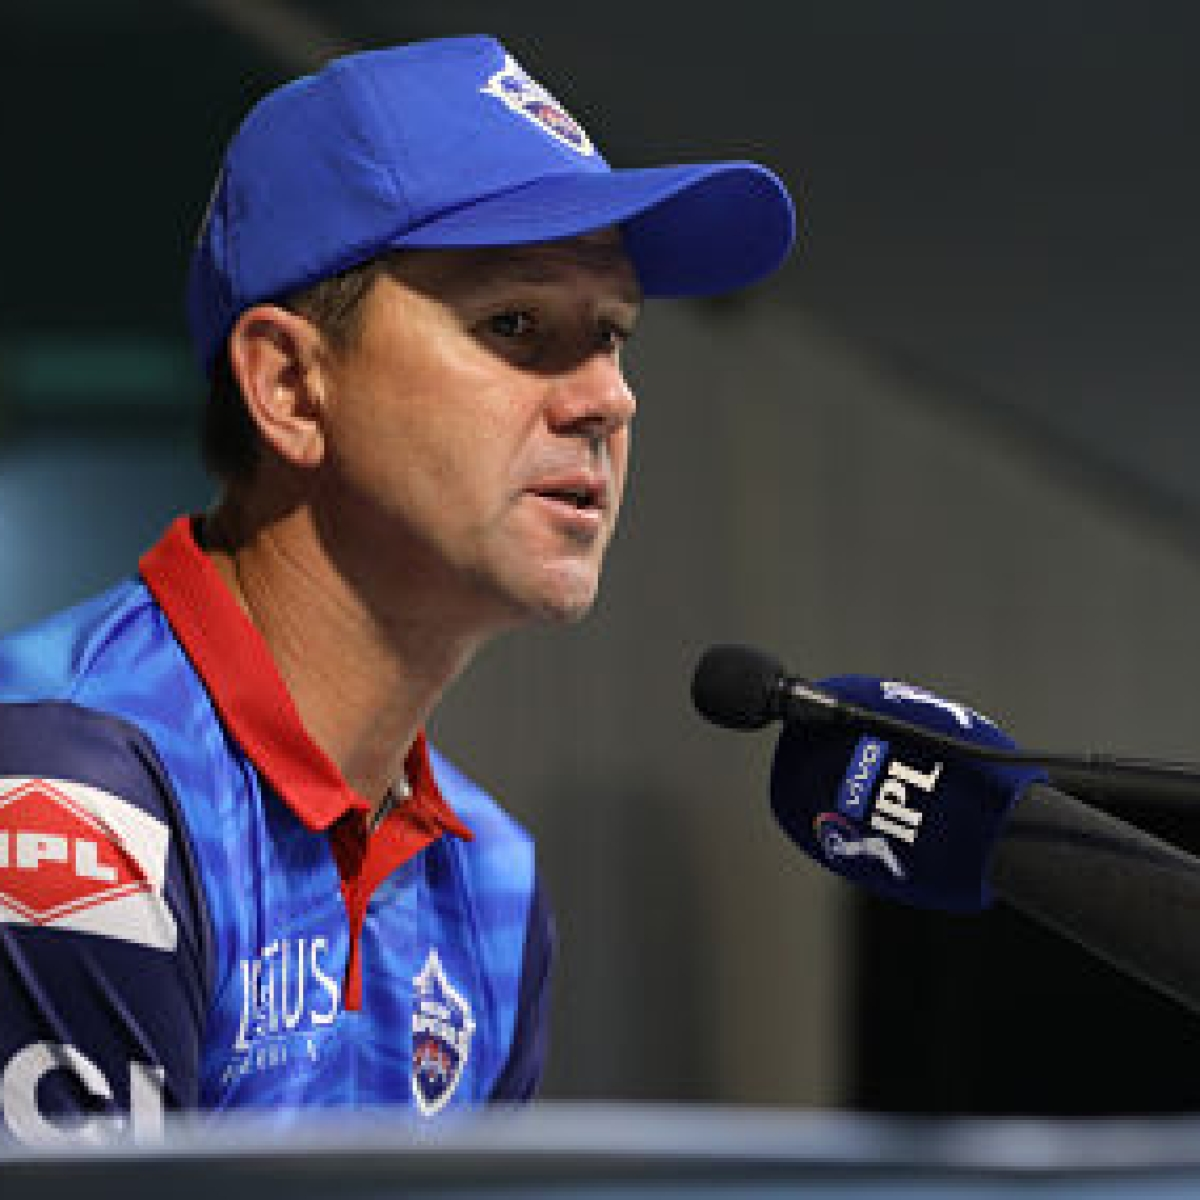 IPL 2020: Delhi Capitals has earned the right to be in final, now it's time to lift trophy, says coach Ricky Ponting